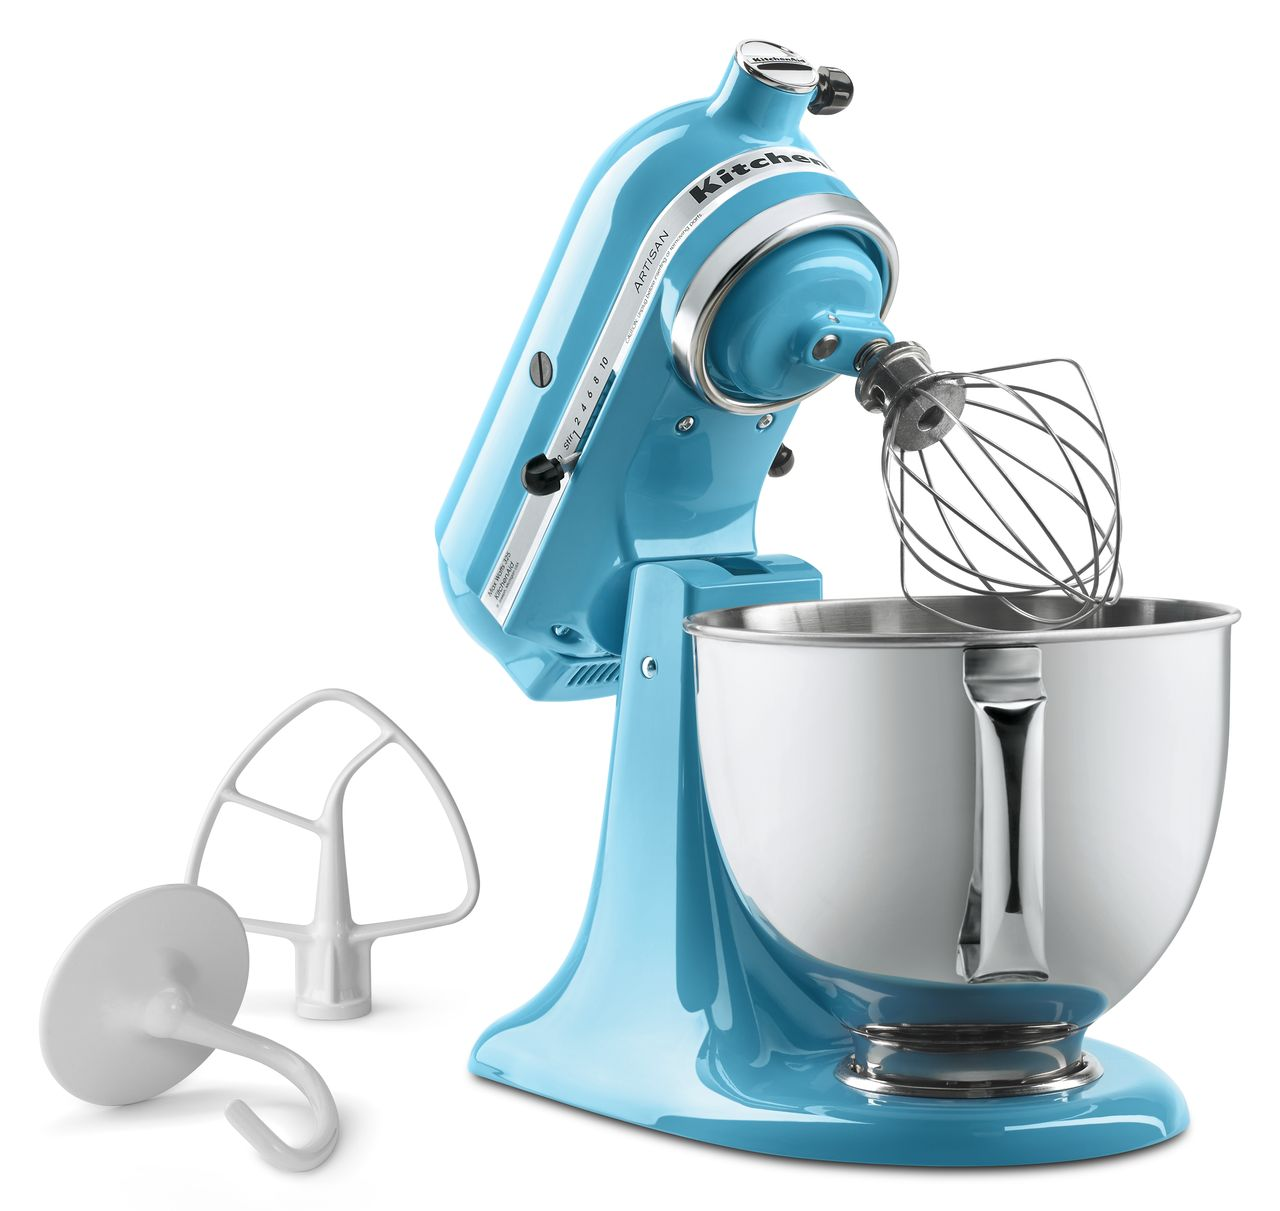 KitchenAid-Refurbished-Artisan-Series-5-Quart-Tilt-Head-Stand-Mixer-RRK150 thumbnail 45